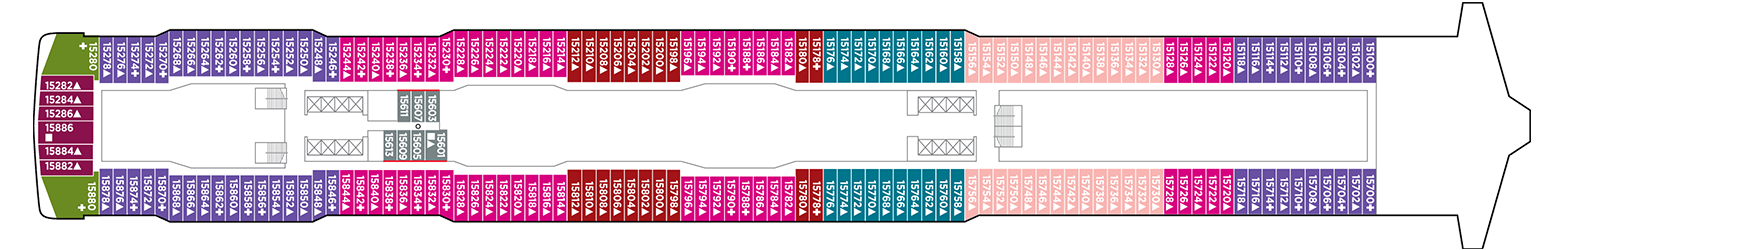 Norwegian Cruise Line Norwegian Escape Deck Plans Deck 15.png